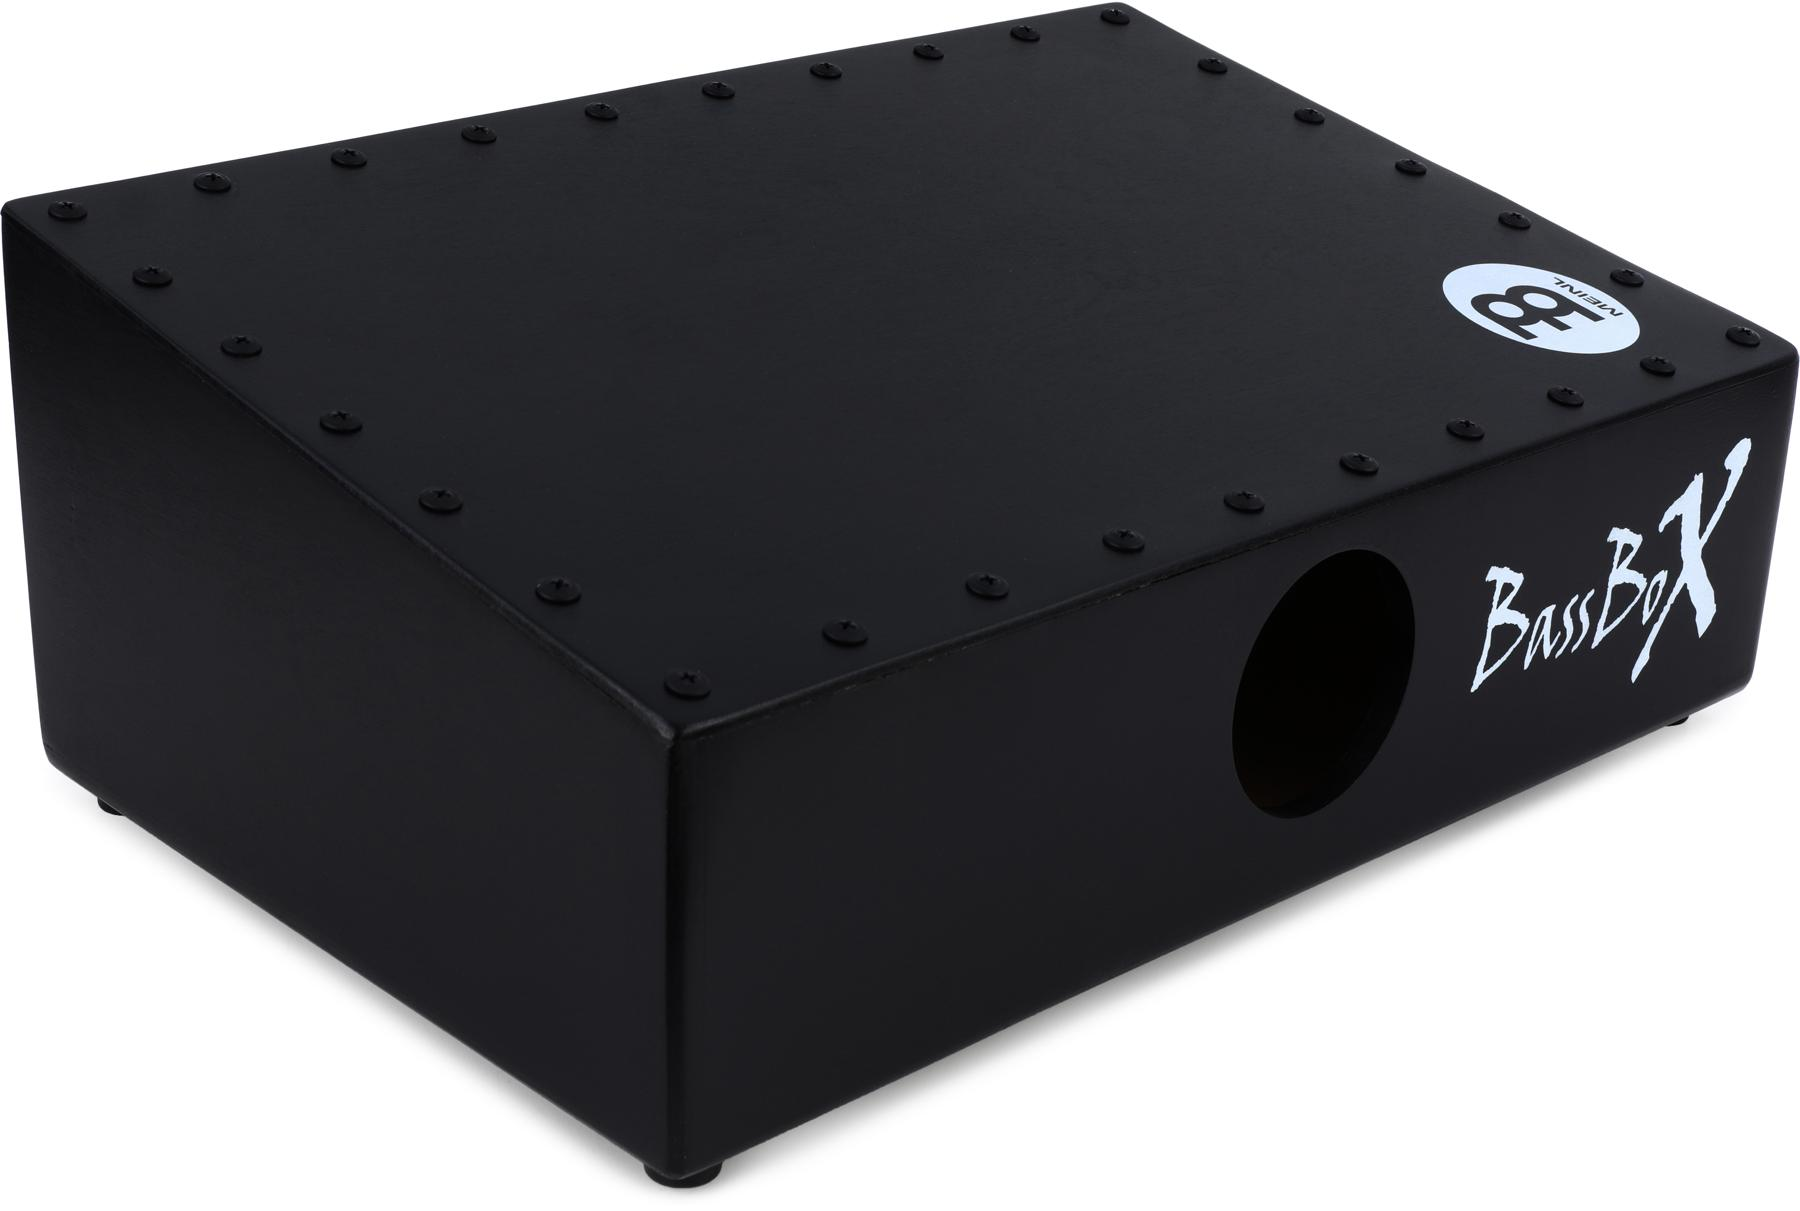 1. Meinl Percussion BassBox